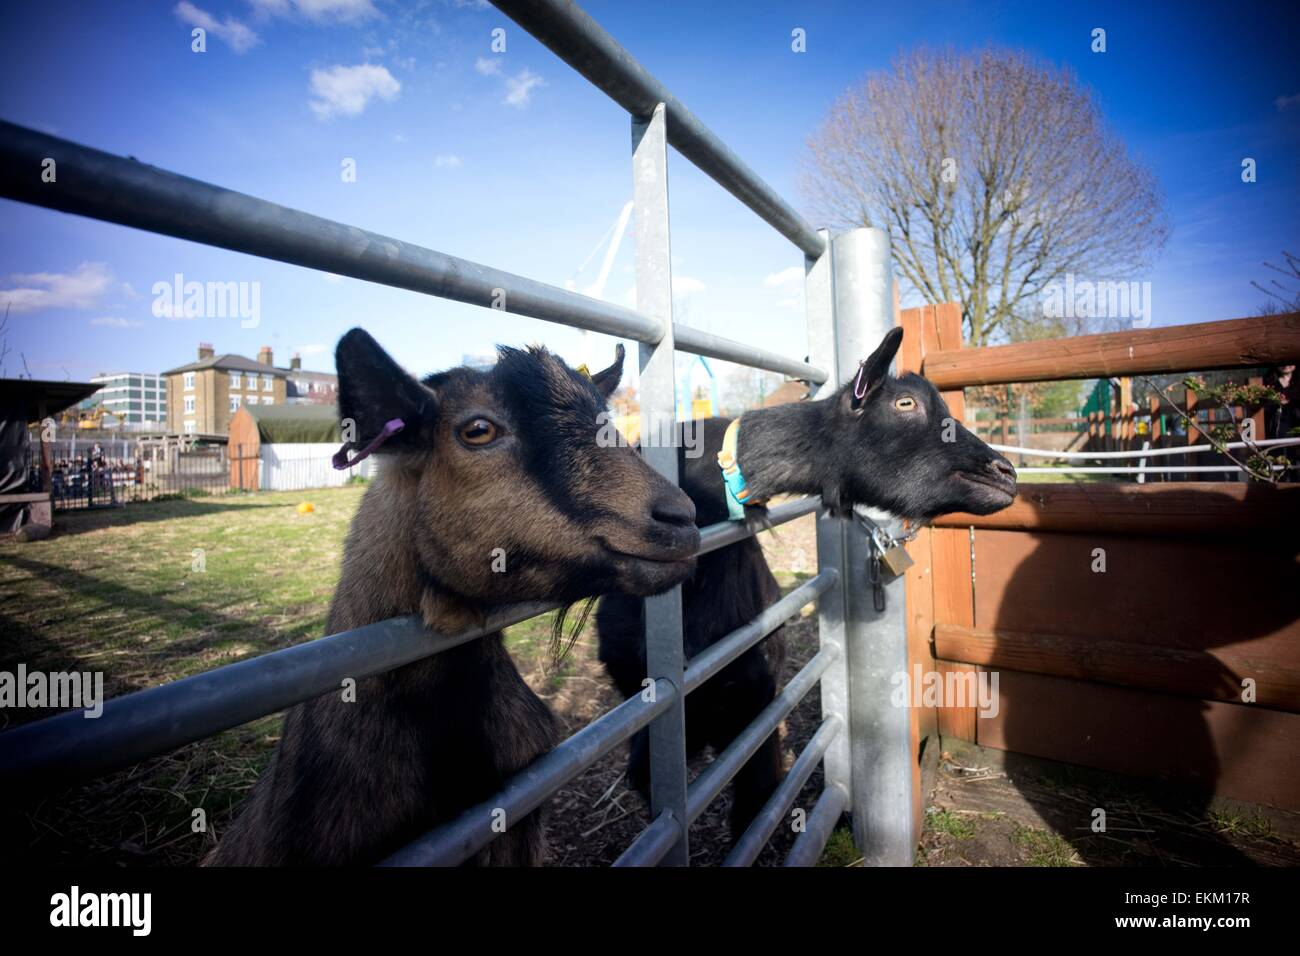 London, United Kingdom. 11th Apr, 2015. The racing goats 'Cambridge' and 'Oxford' seen before the - Stock Image